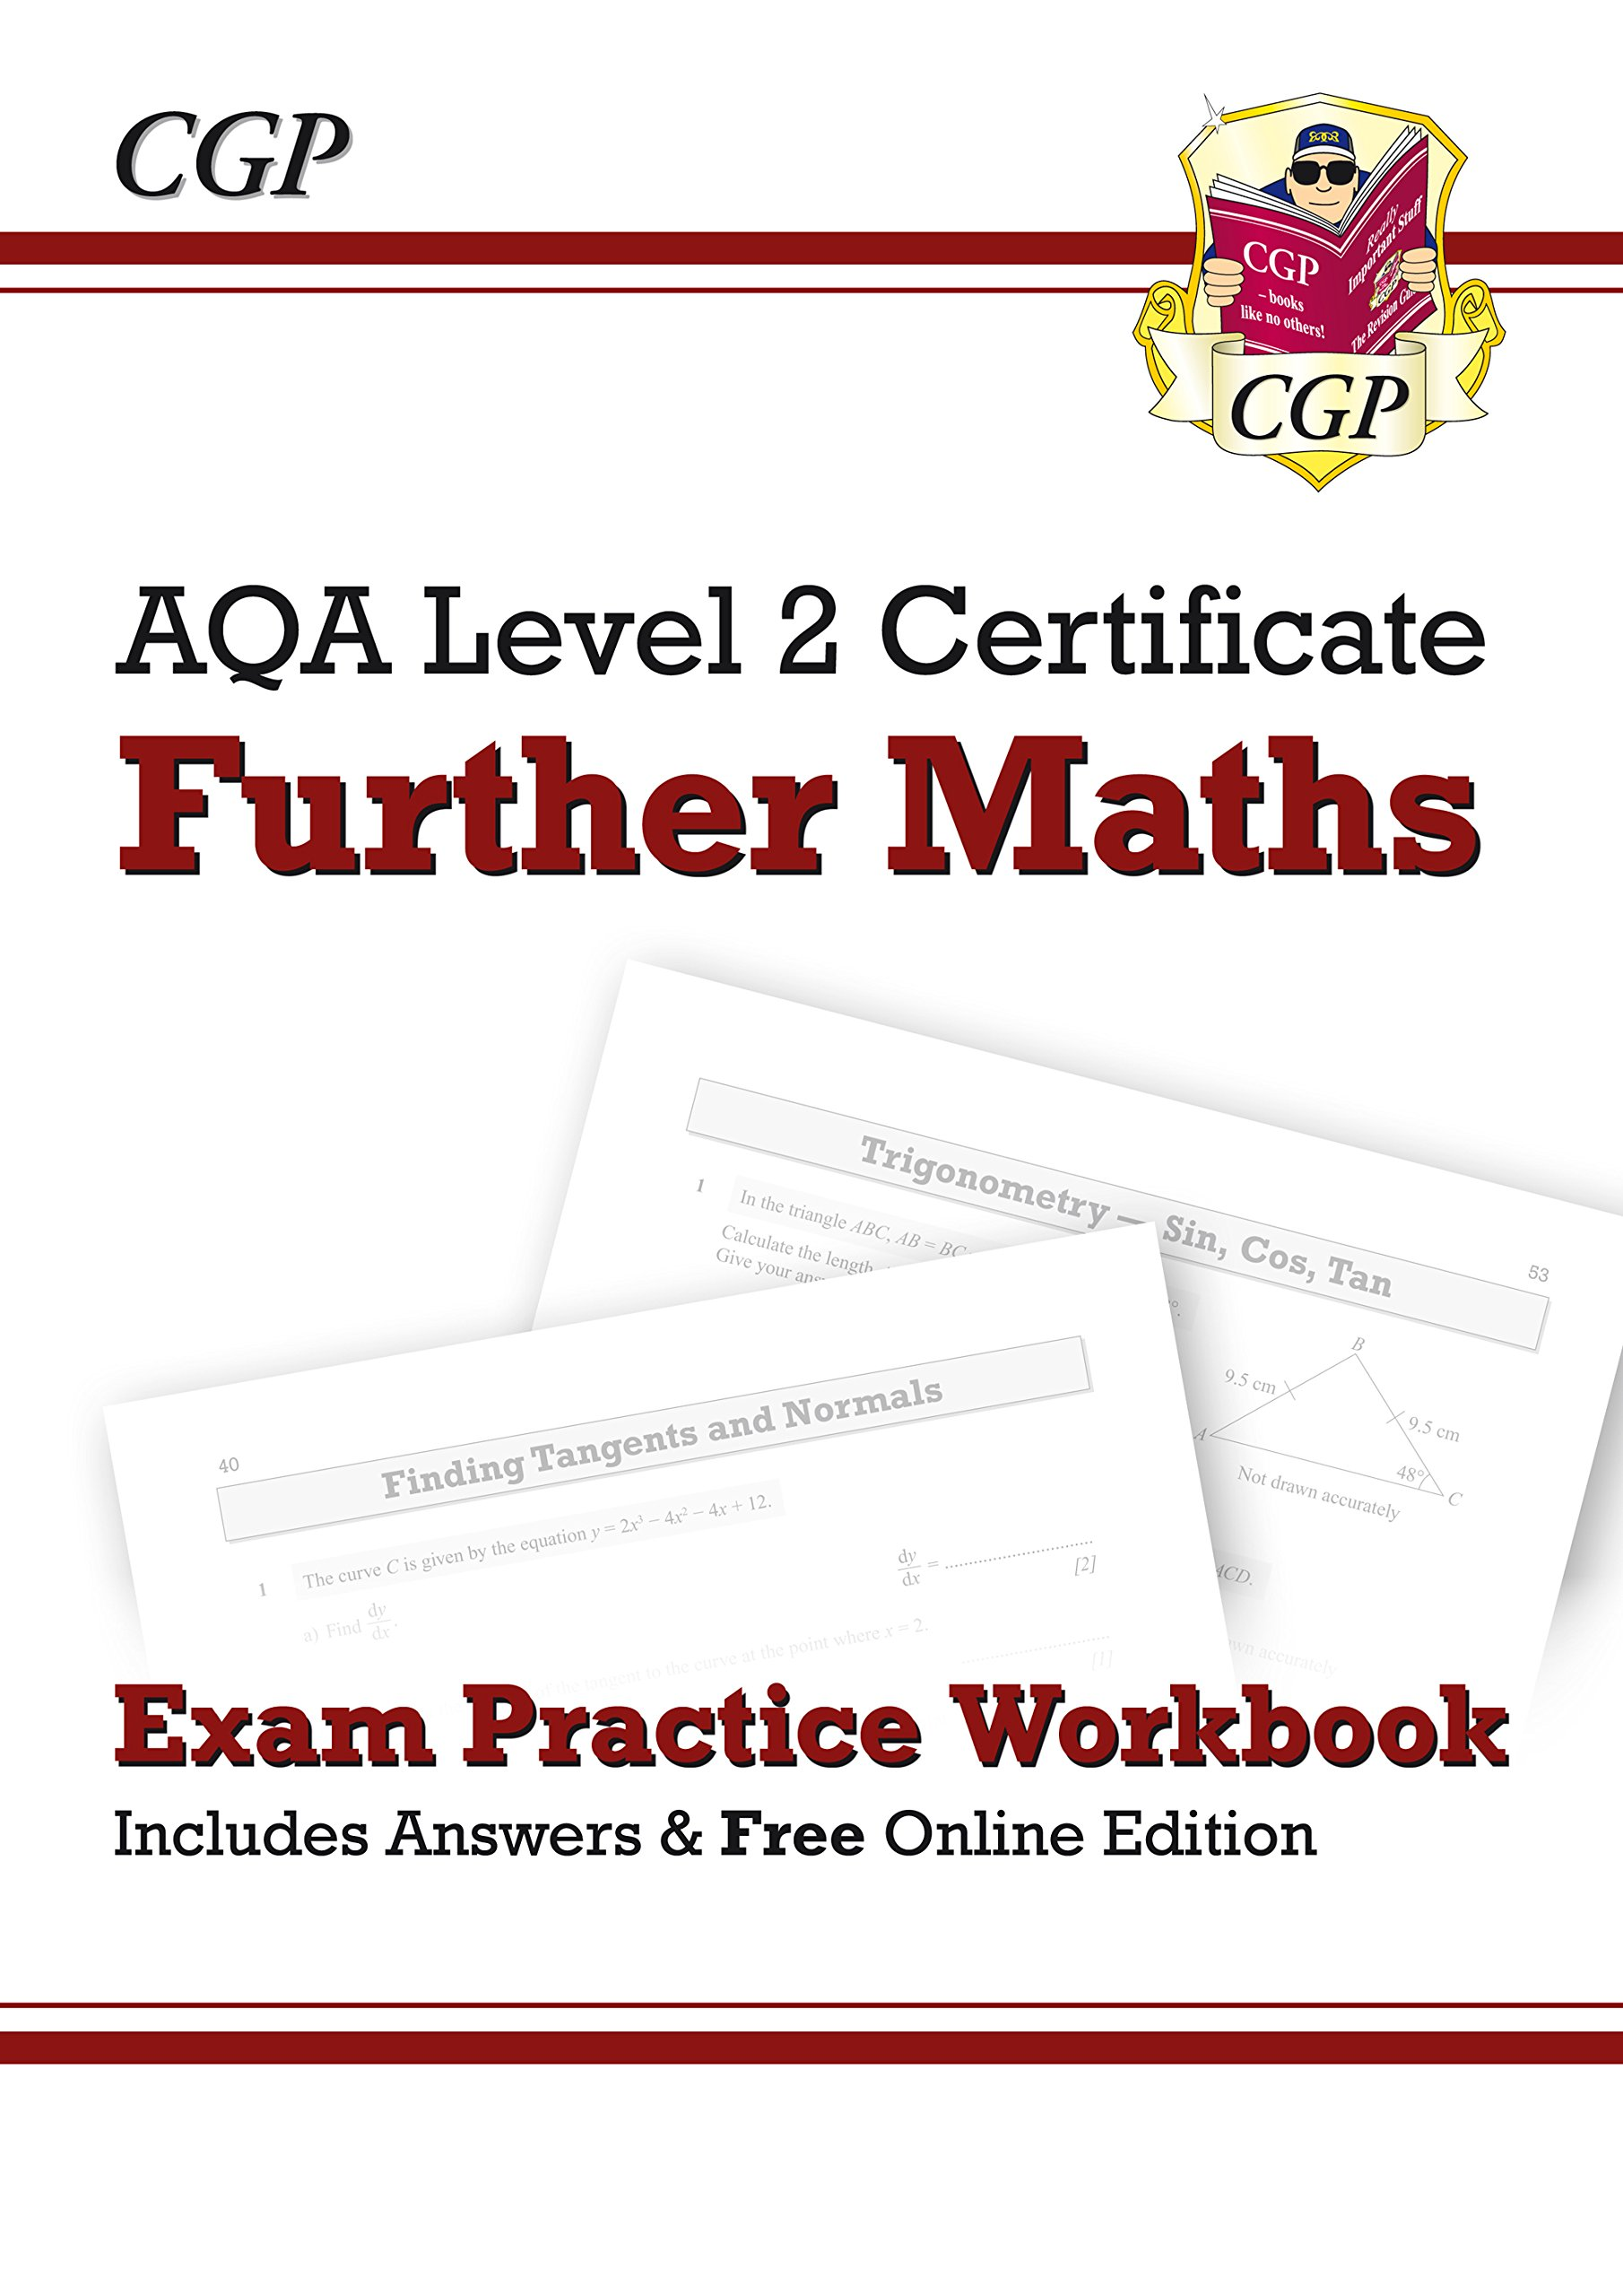 Aqa certificate in further mathematics amazon val hanrahan aqa level 2 certificate in further maths exam practice workbook with ans online 1betcityfo Images